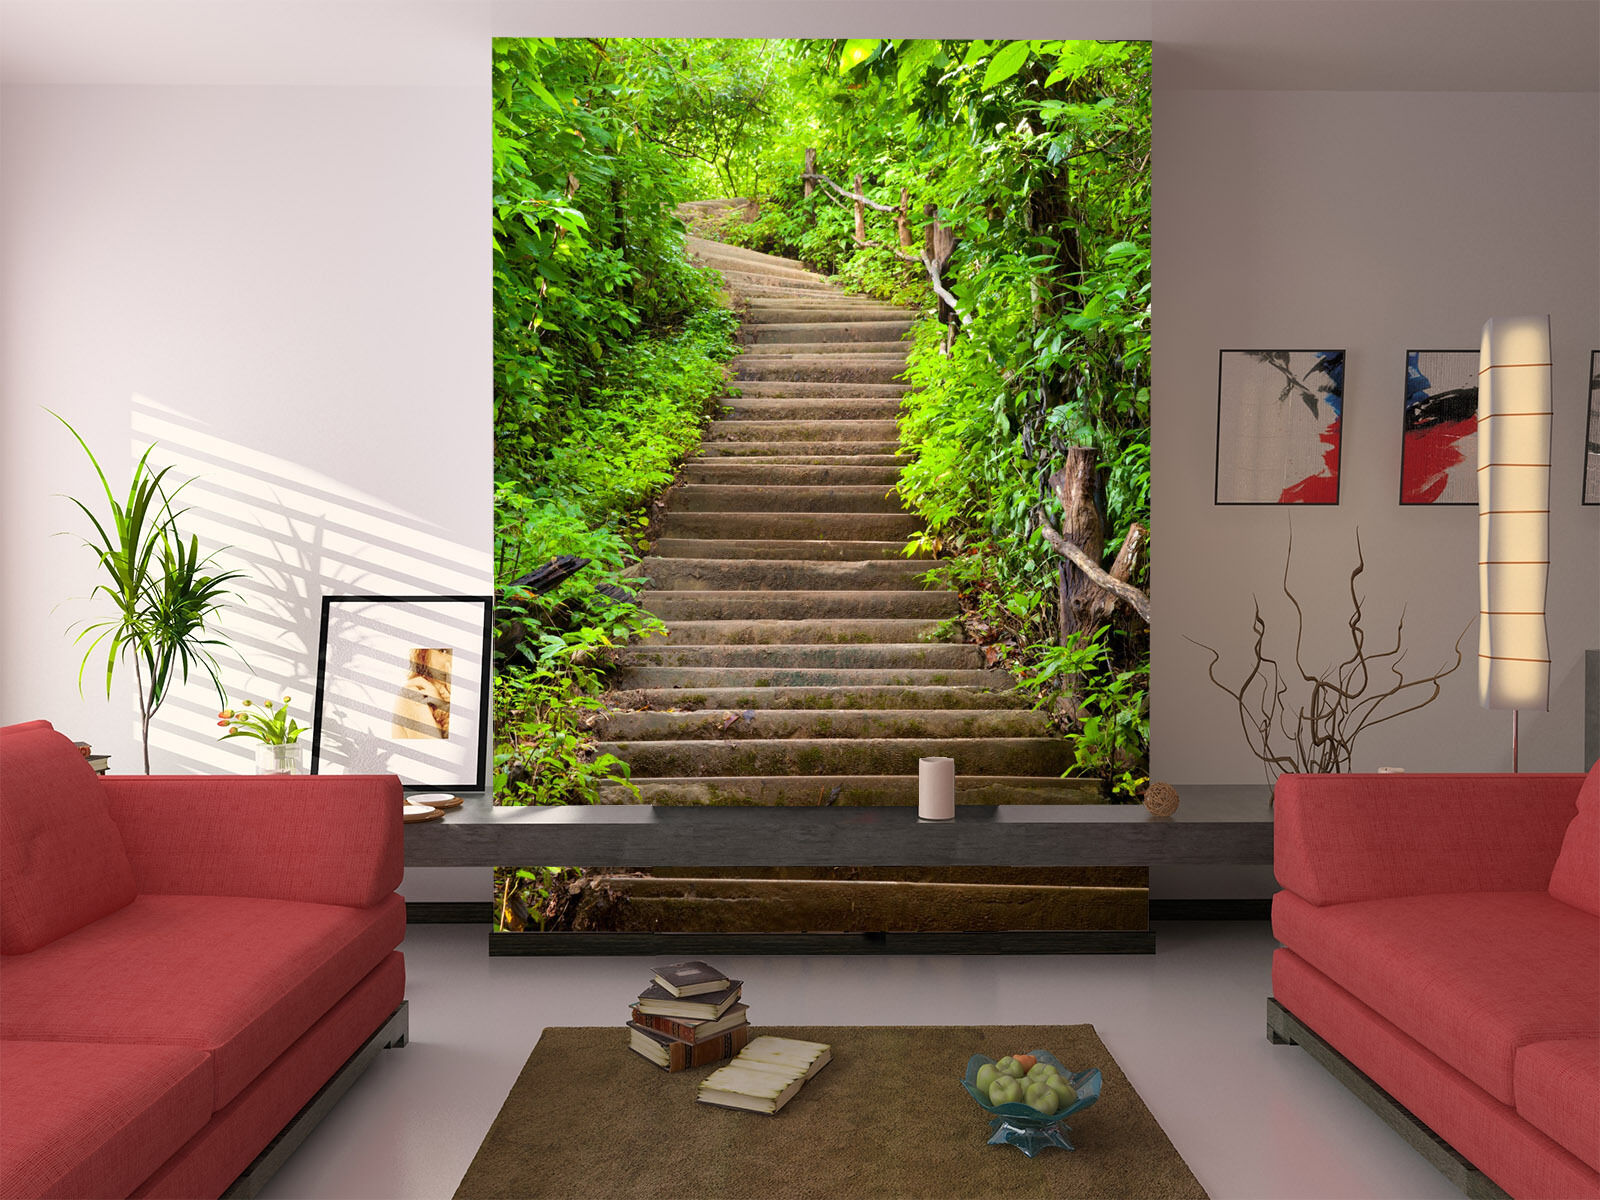 3D Grün leaf stair 434 Wall Paper Wall Print Decal Wall Deco Indoor Wall Murals